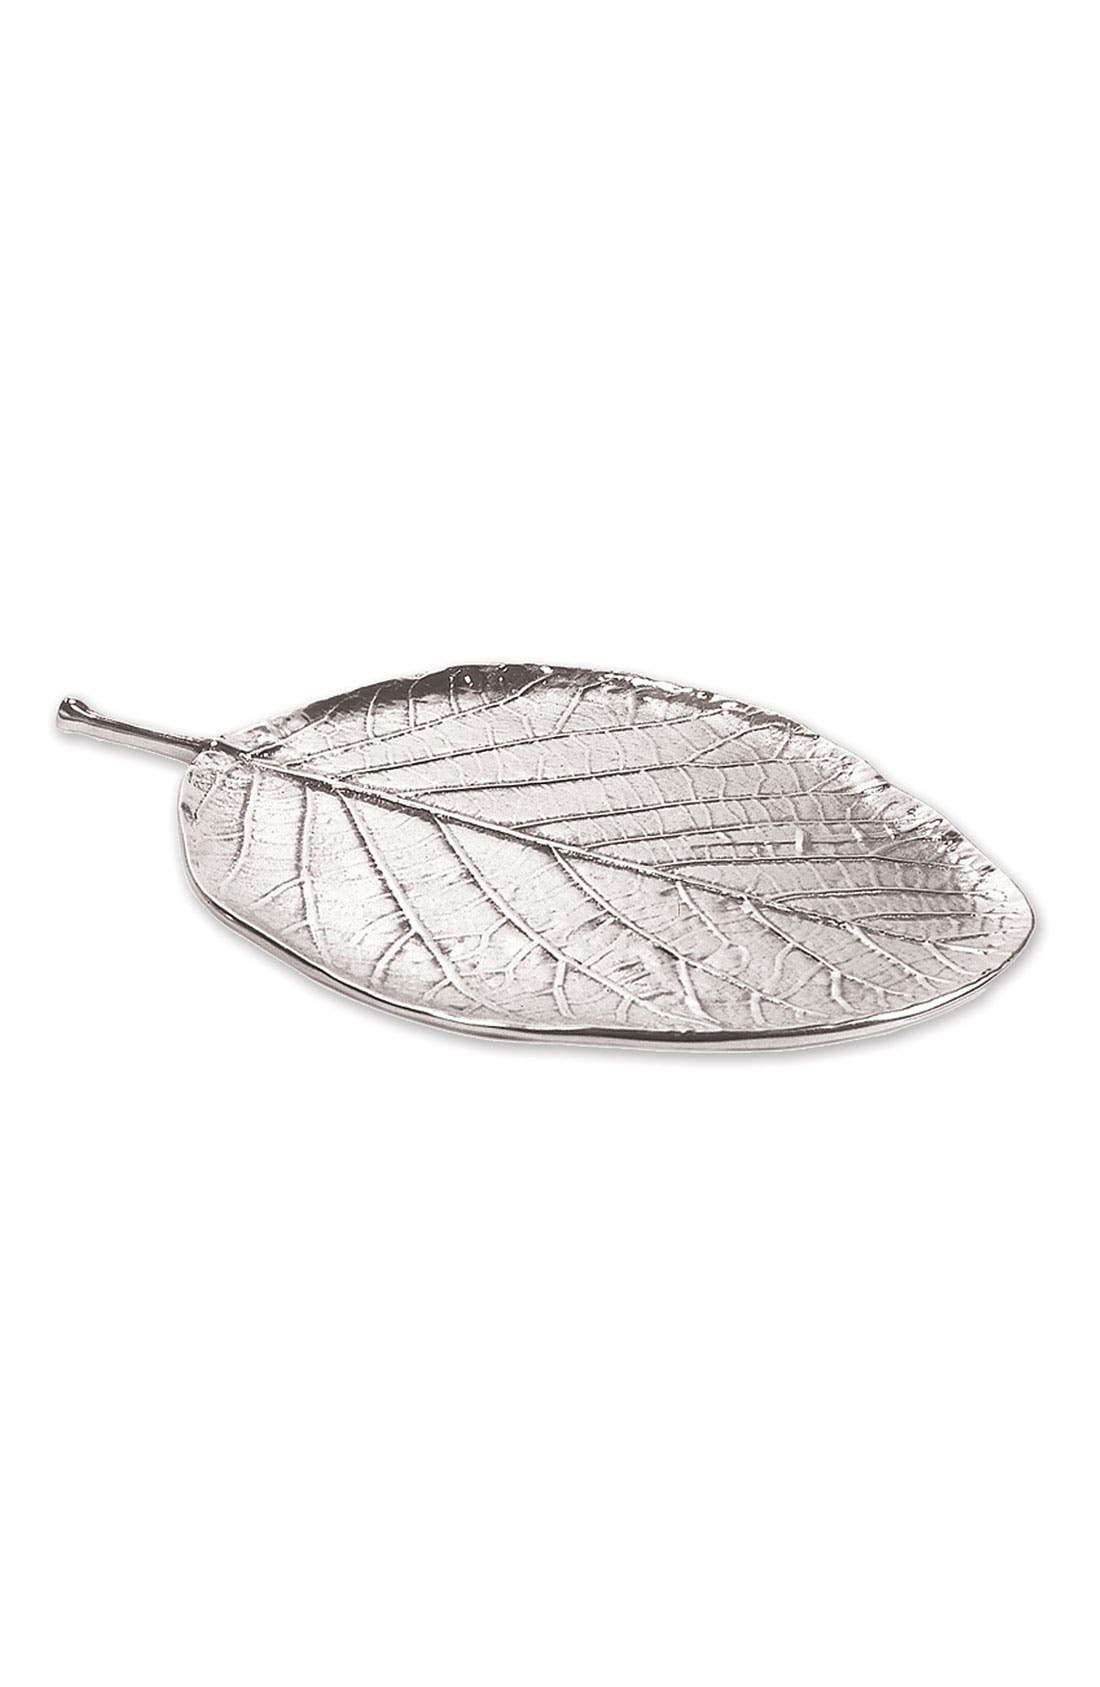 Main Image - Michael Aram 'Botanical Leaf' Tray